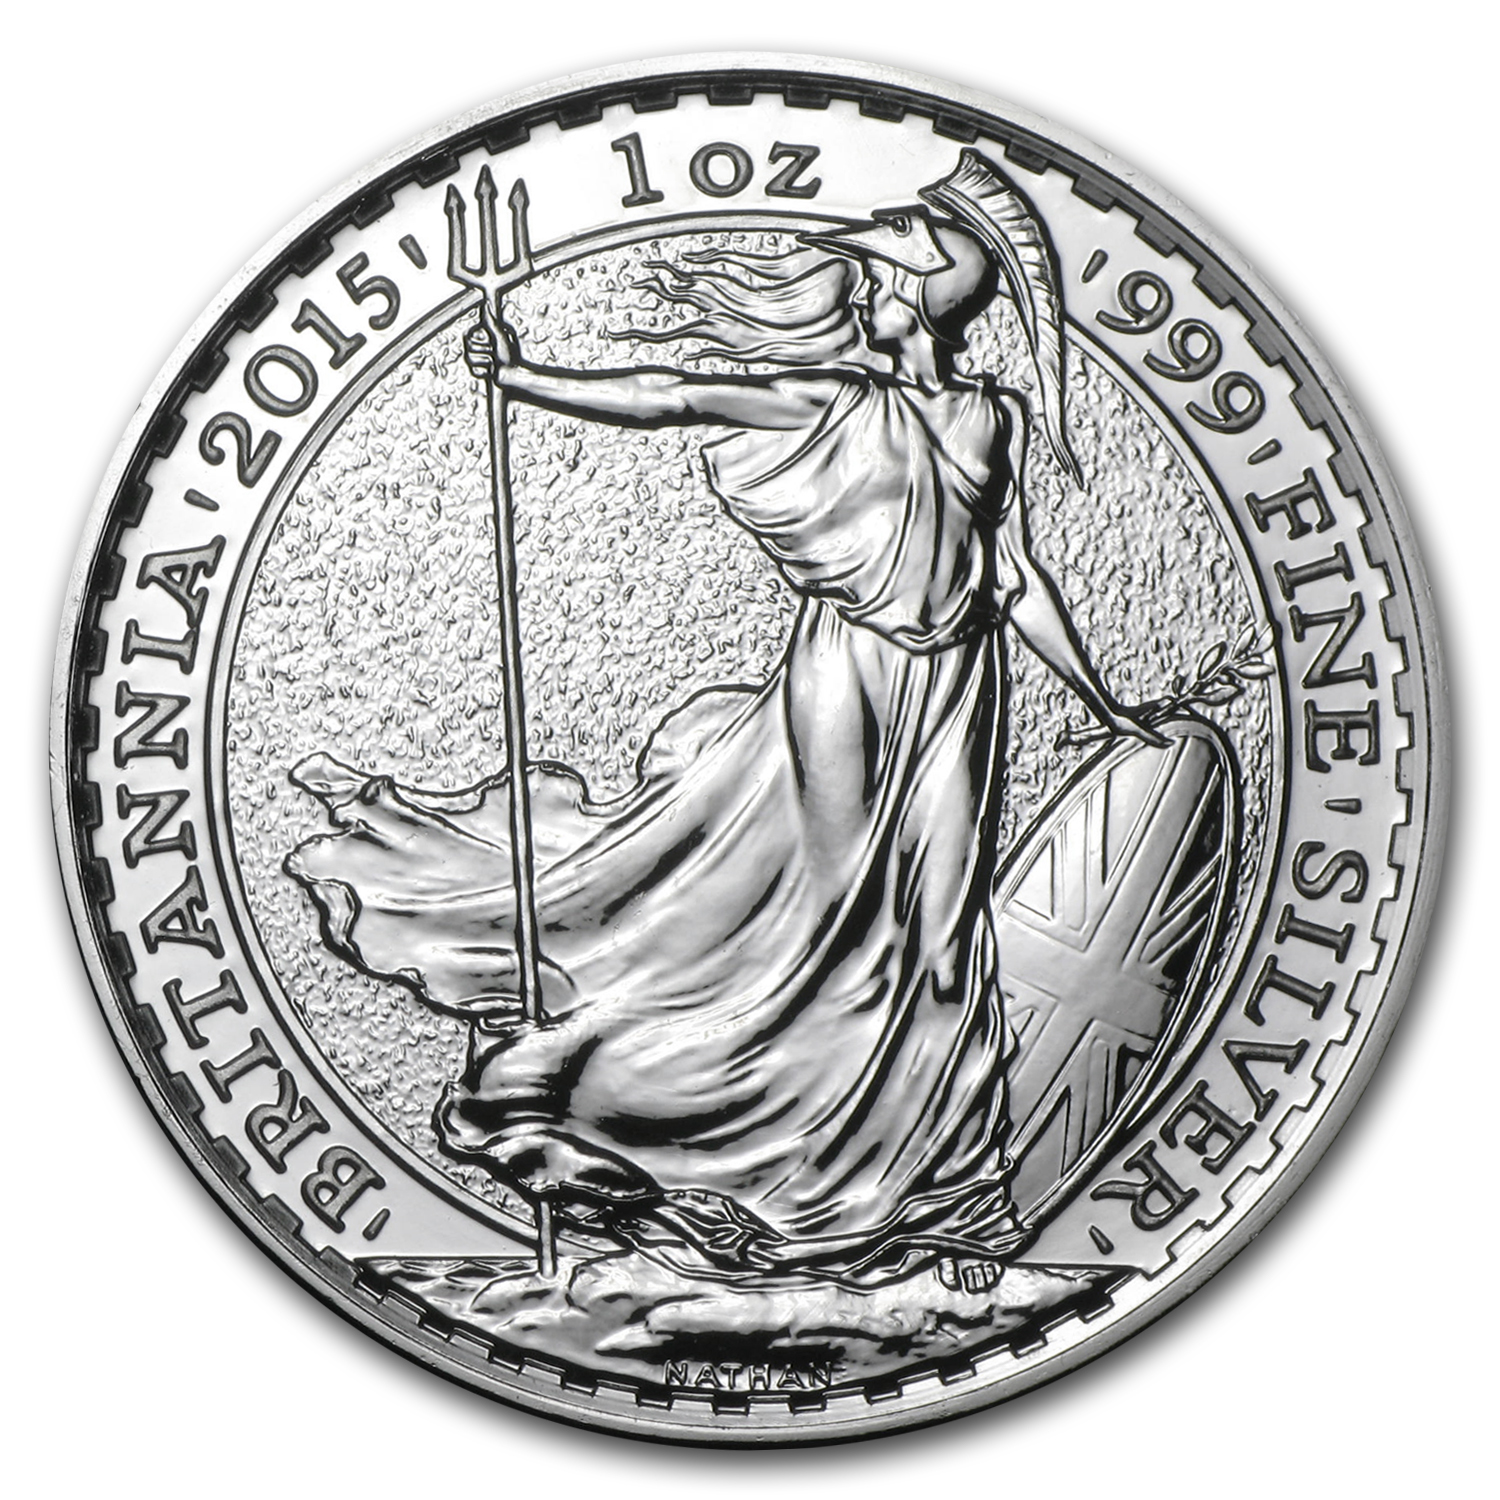 2015 500-Coin 1 oz Silver Britannia Monster Box BU